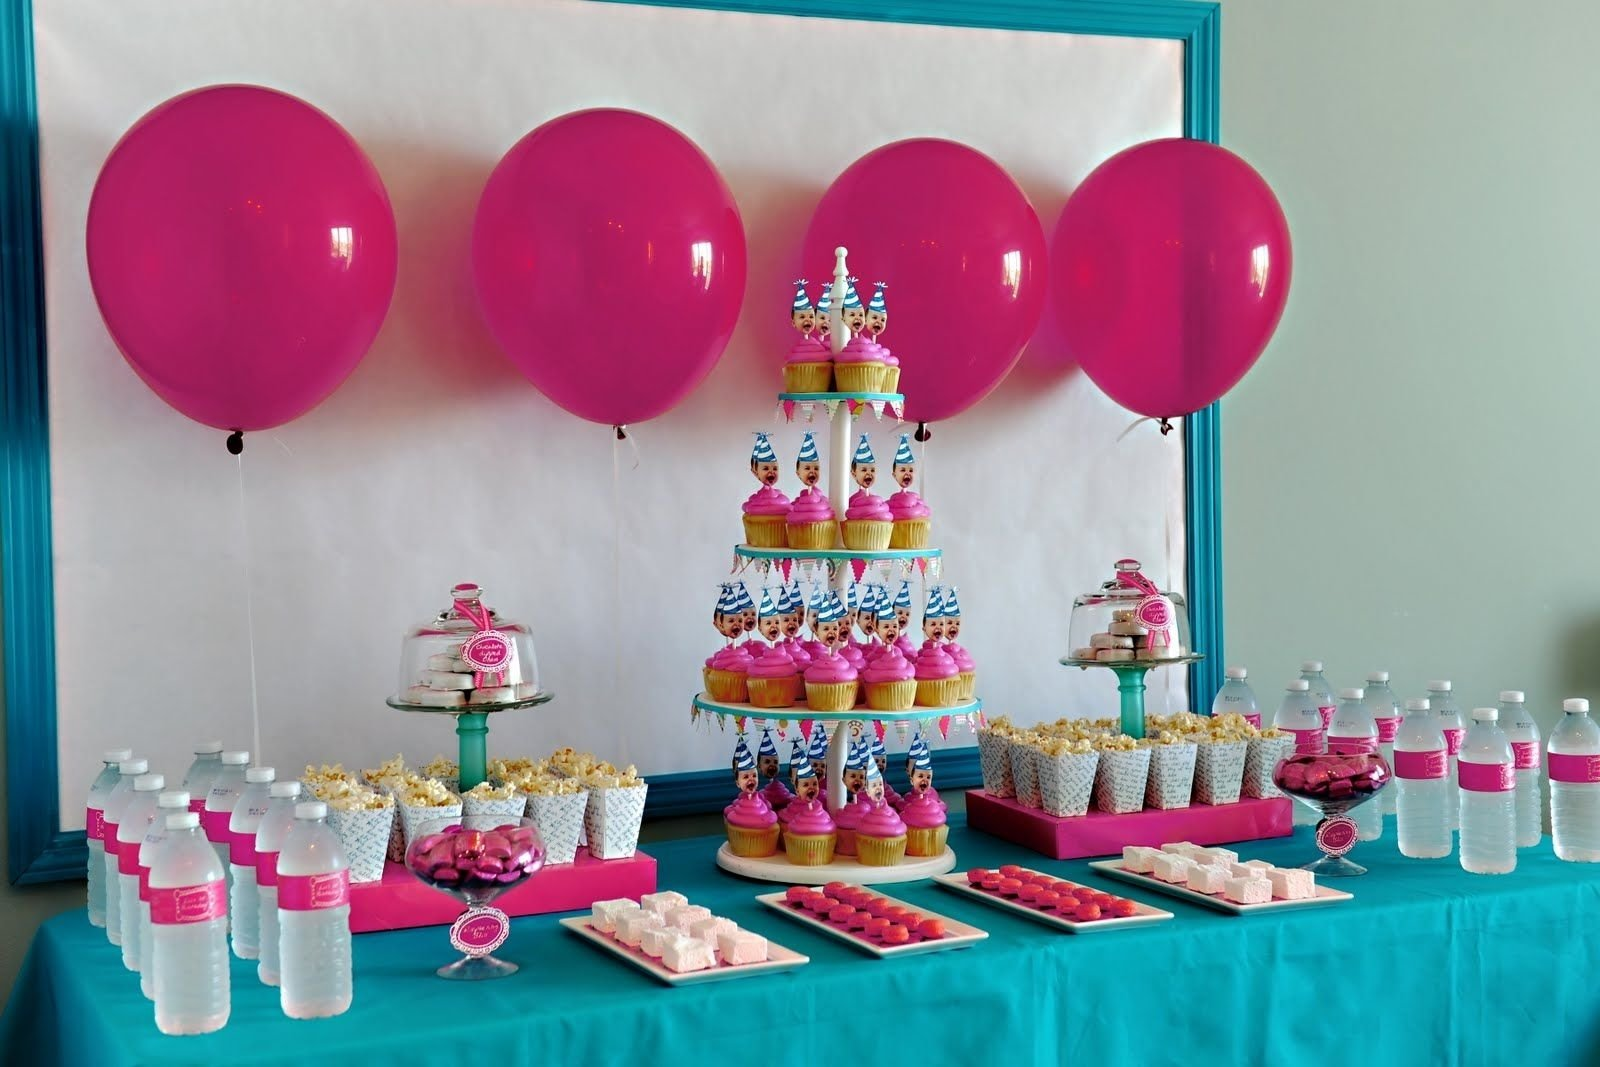 10 Most Recommended Girls 1St Birthday Party Ideas outside party ideas 1st birthday bella grace party designs real 6 2020